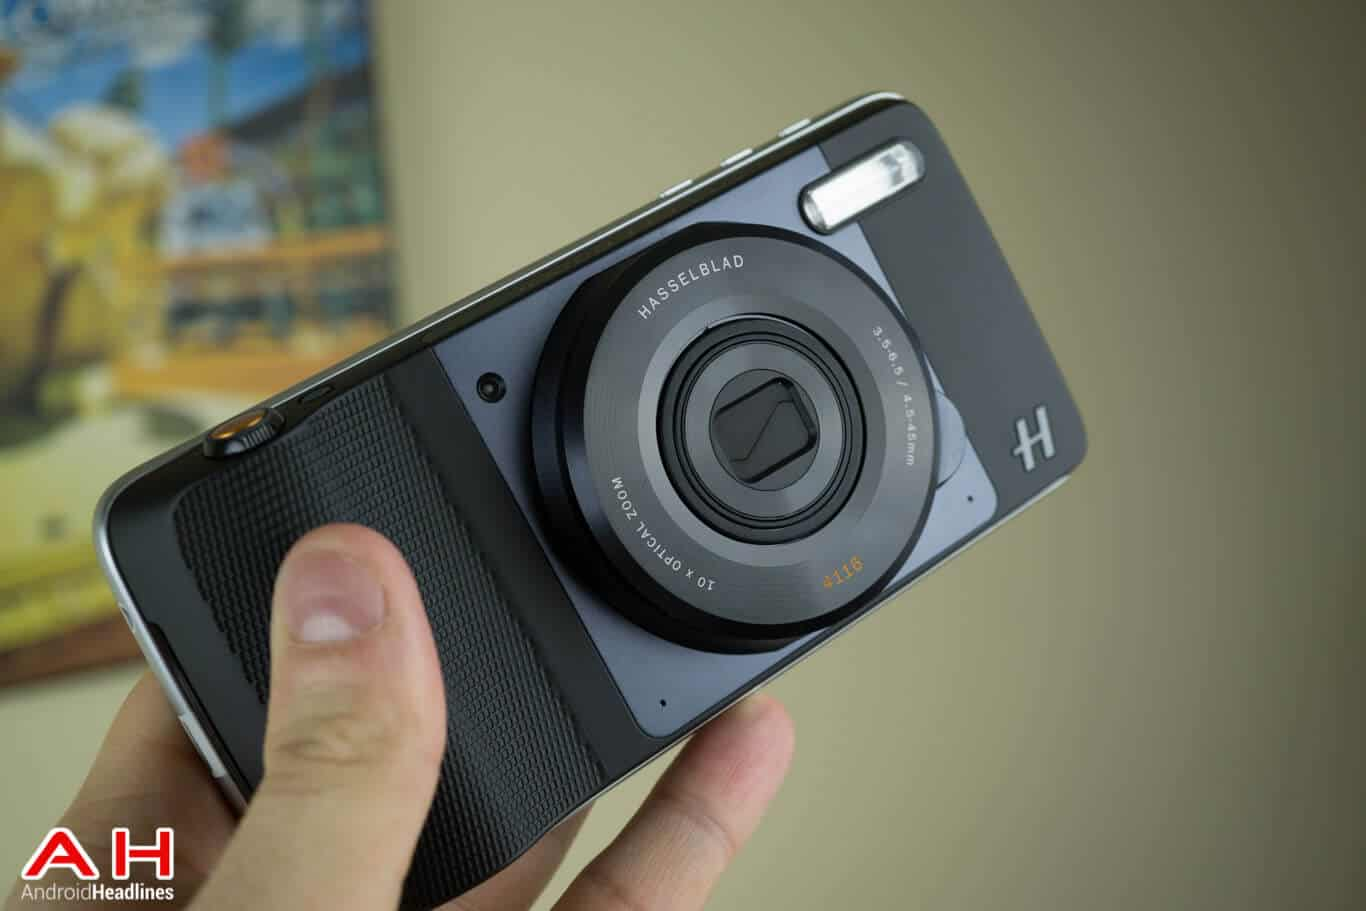 Hasselblad Camera Moto Mod Review AM AH 10